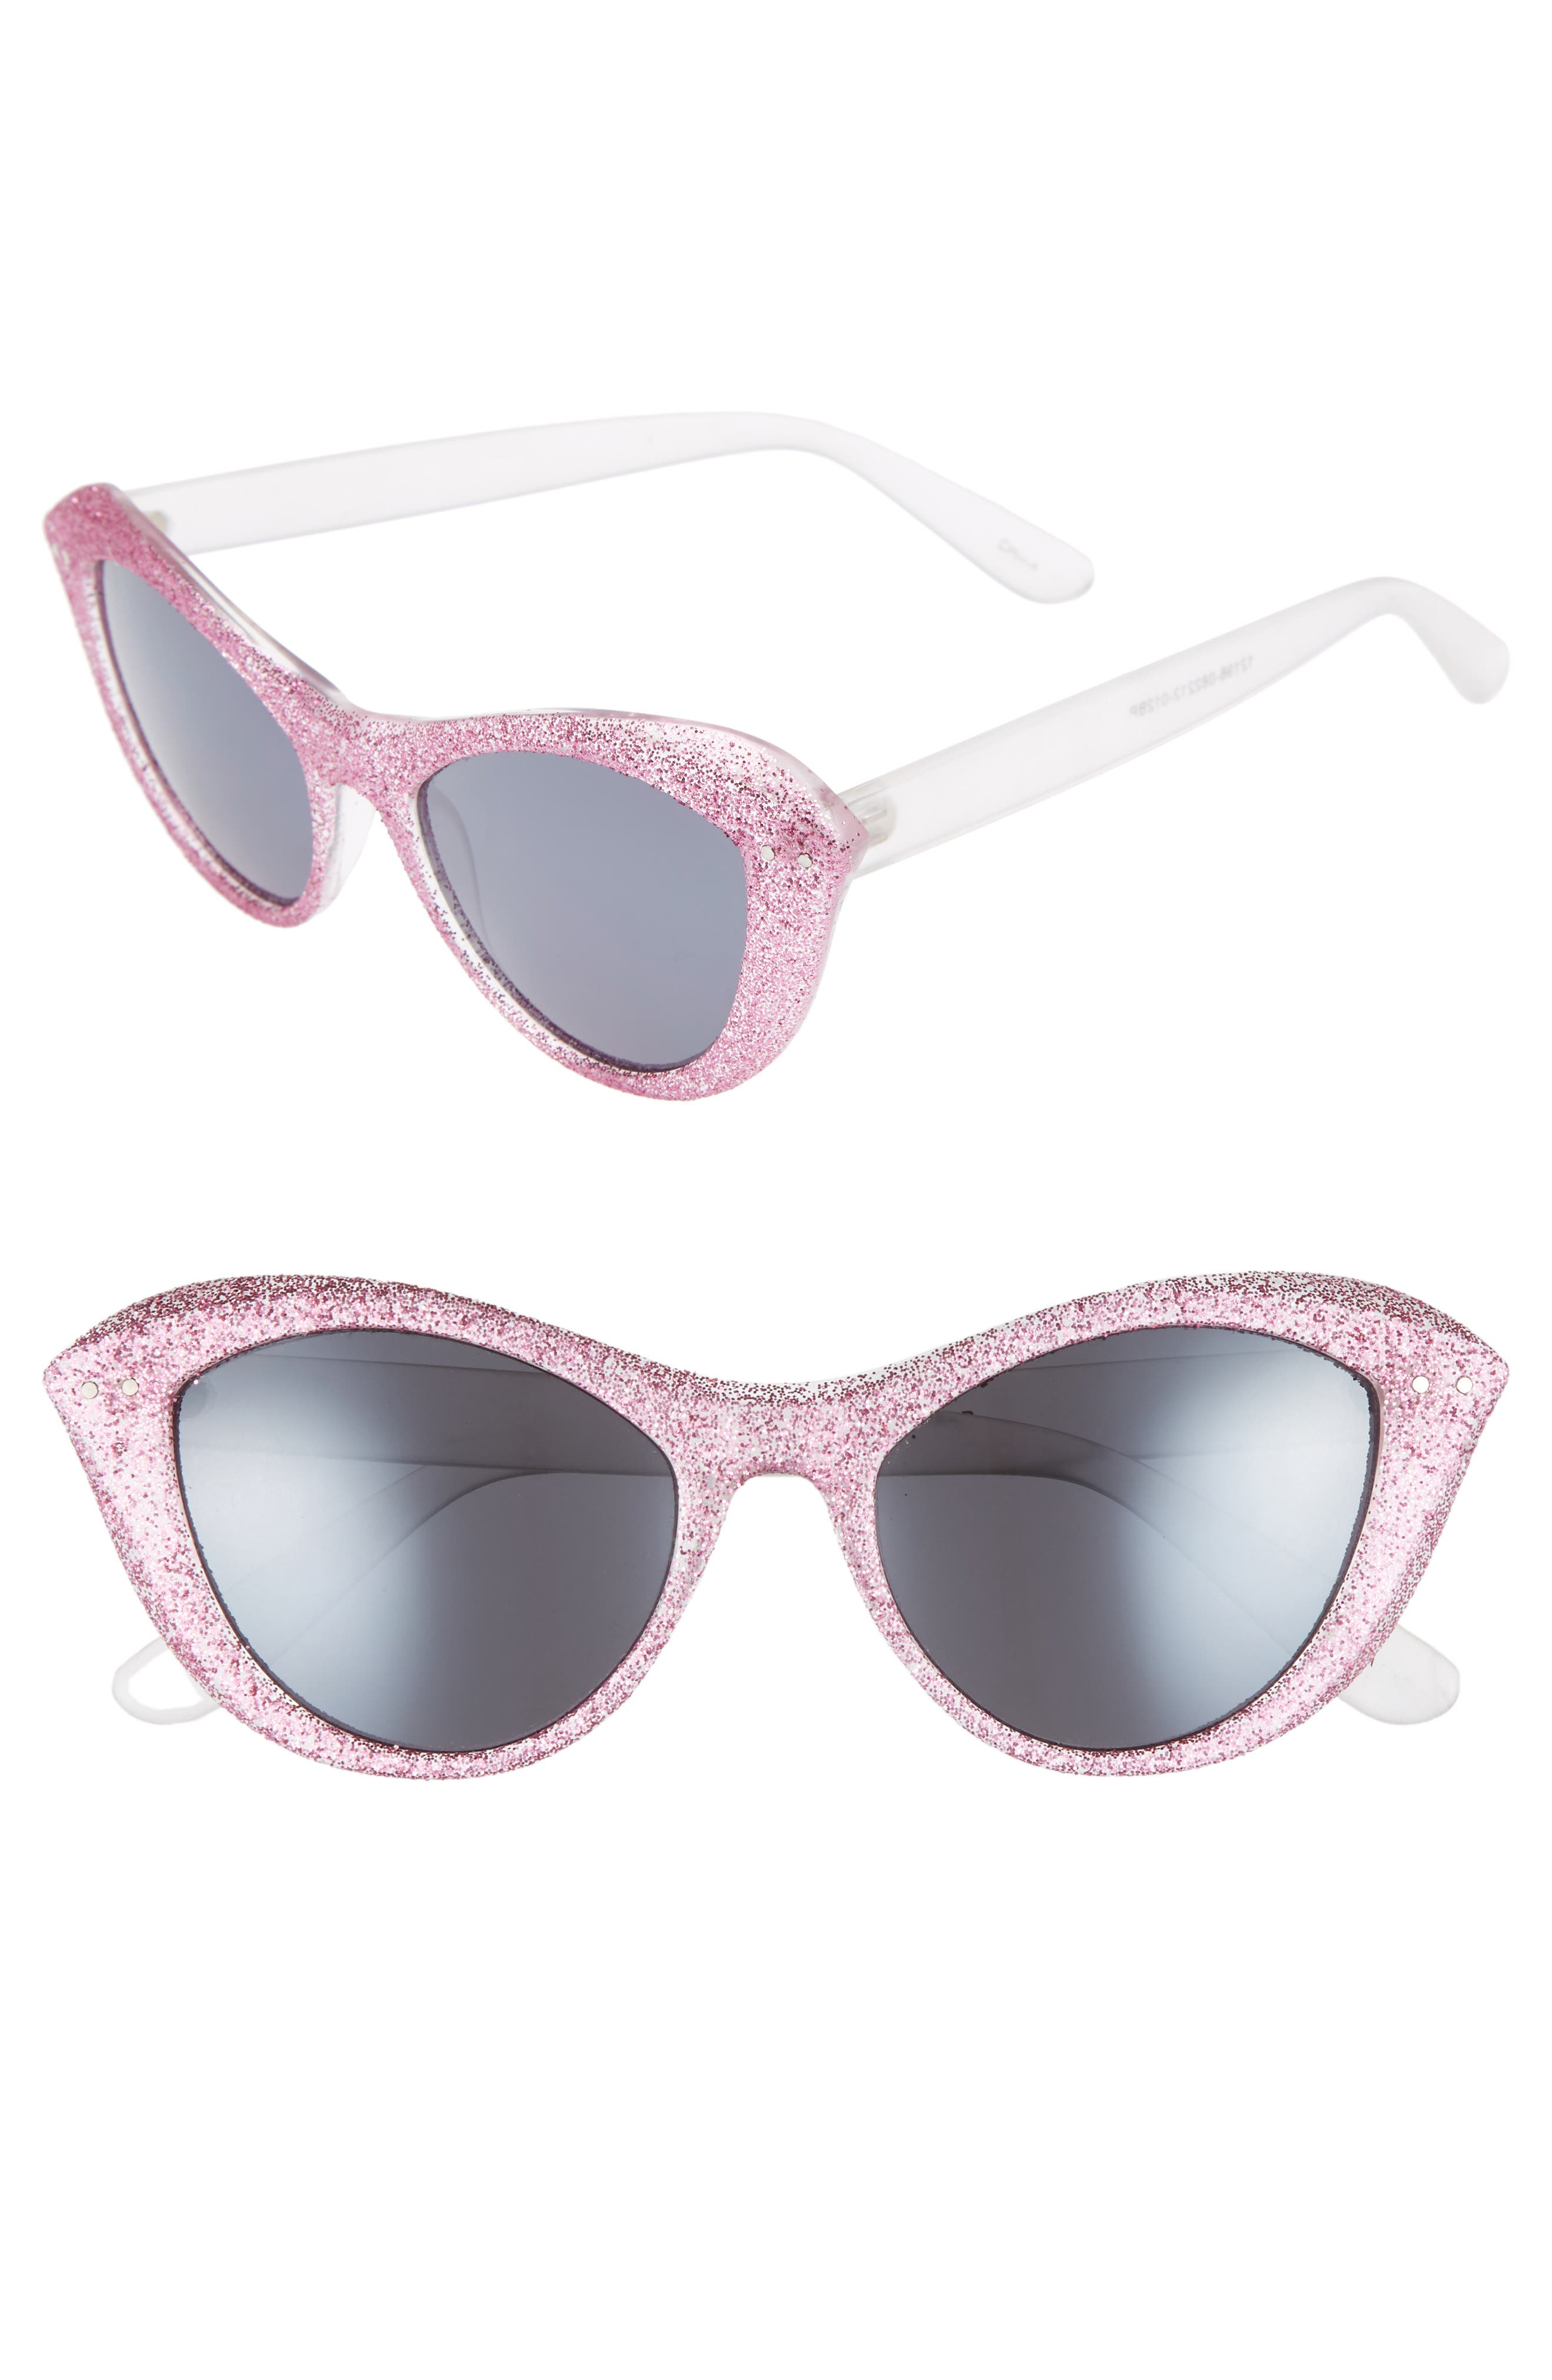 50mm Retro Cat Eye Sunglasses,                         Main,                         color, Milky White/ Pink